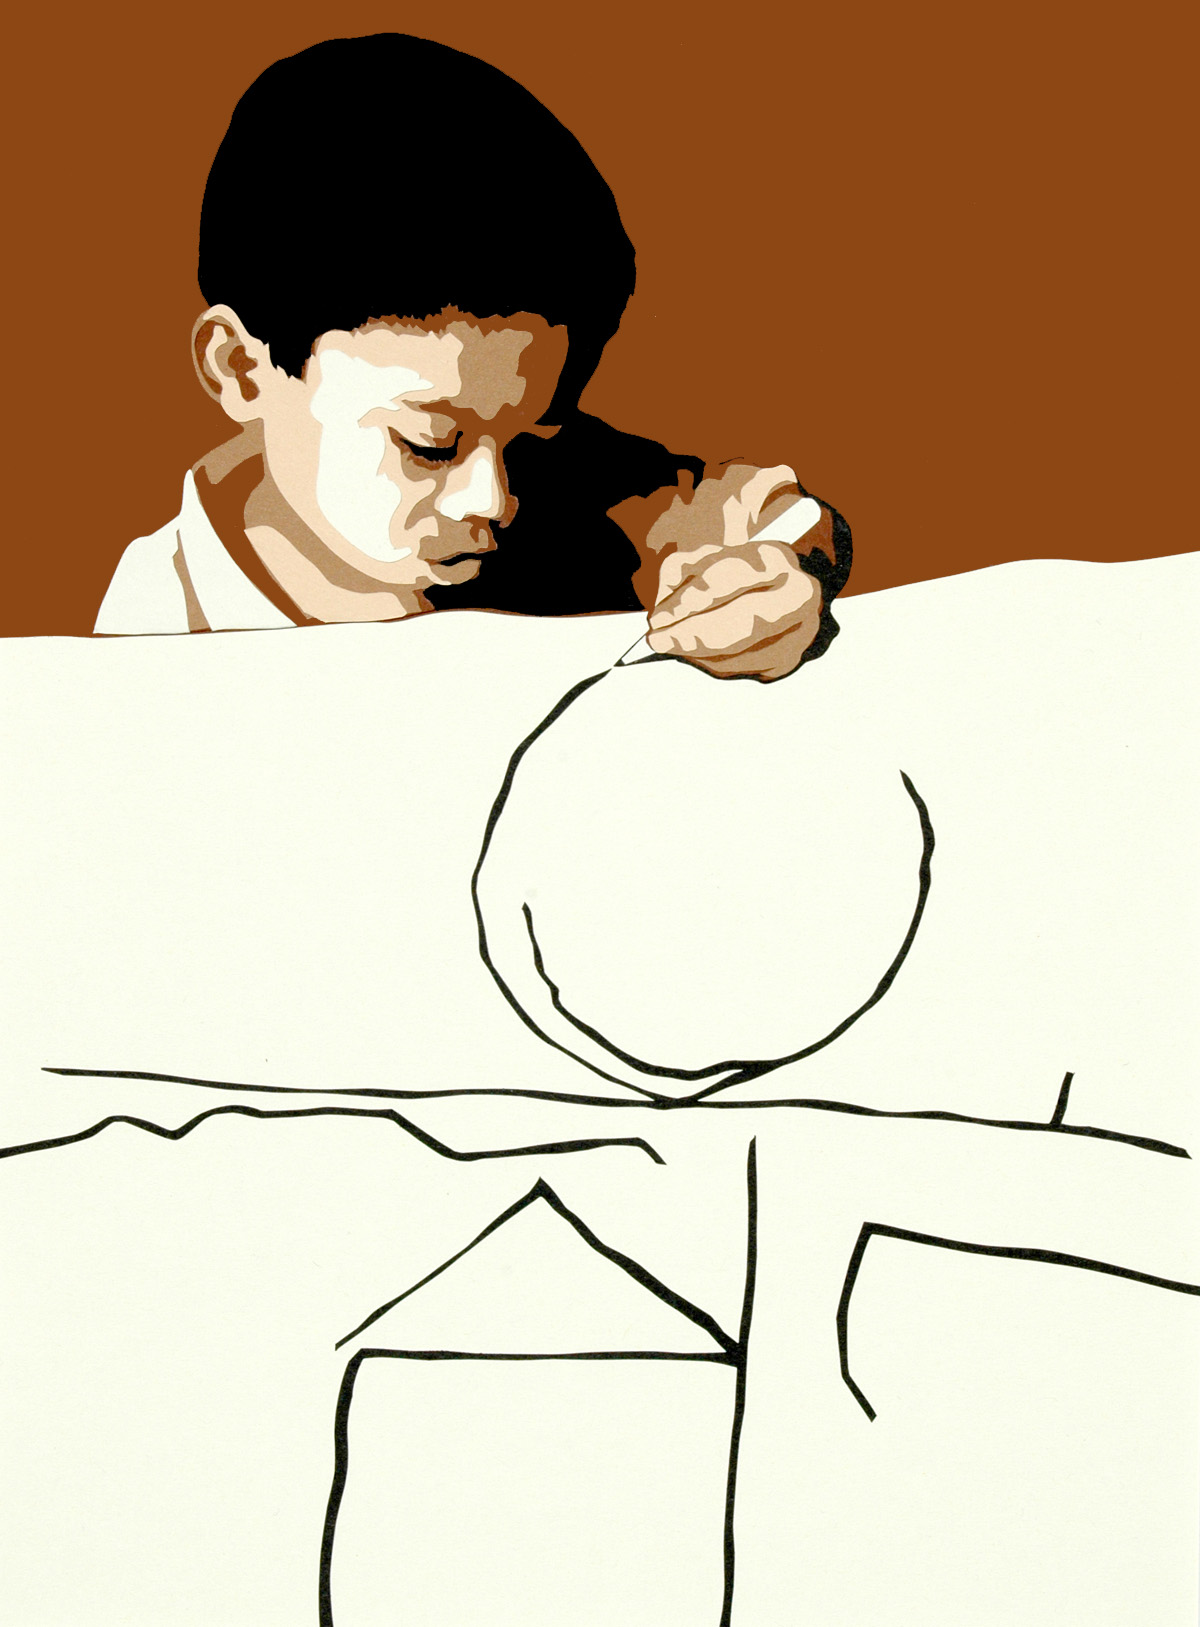 I Draw, cut paper collage, Mike Tedder